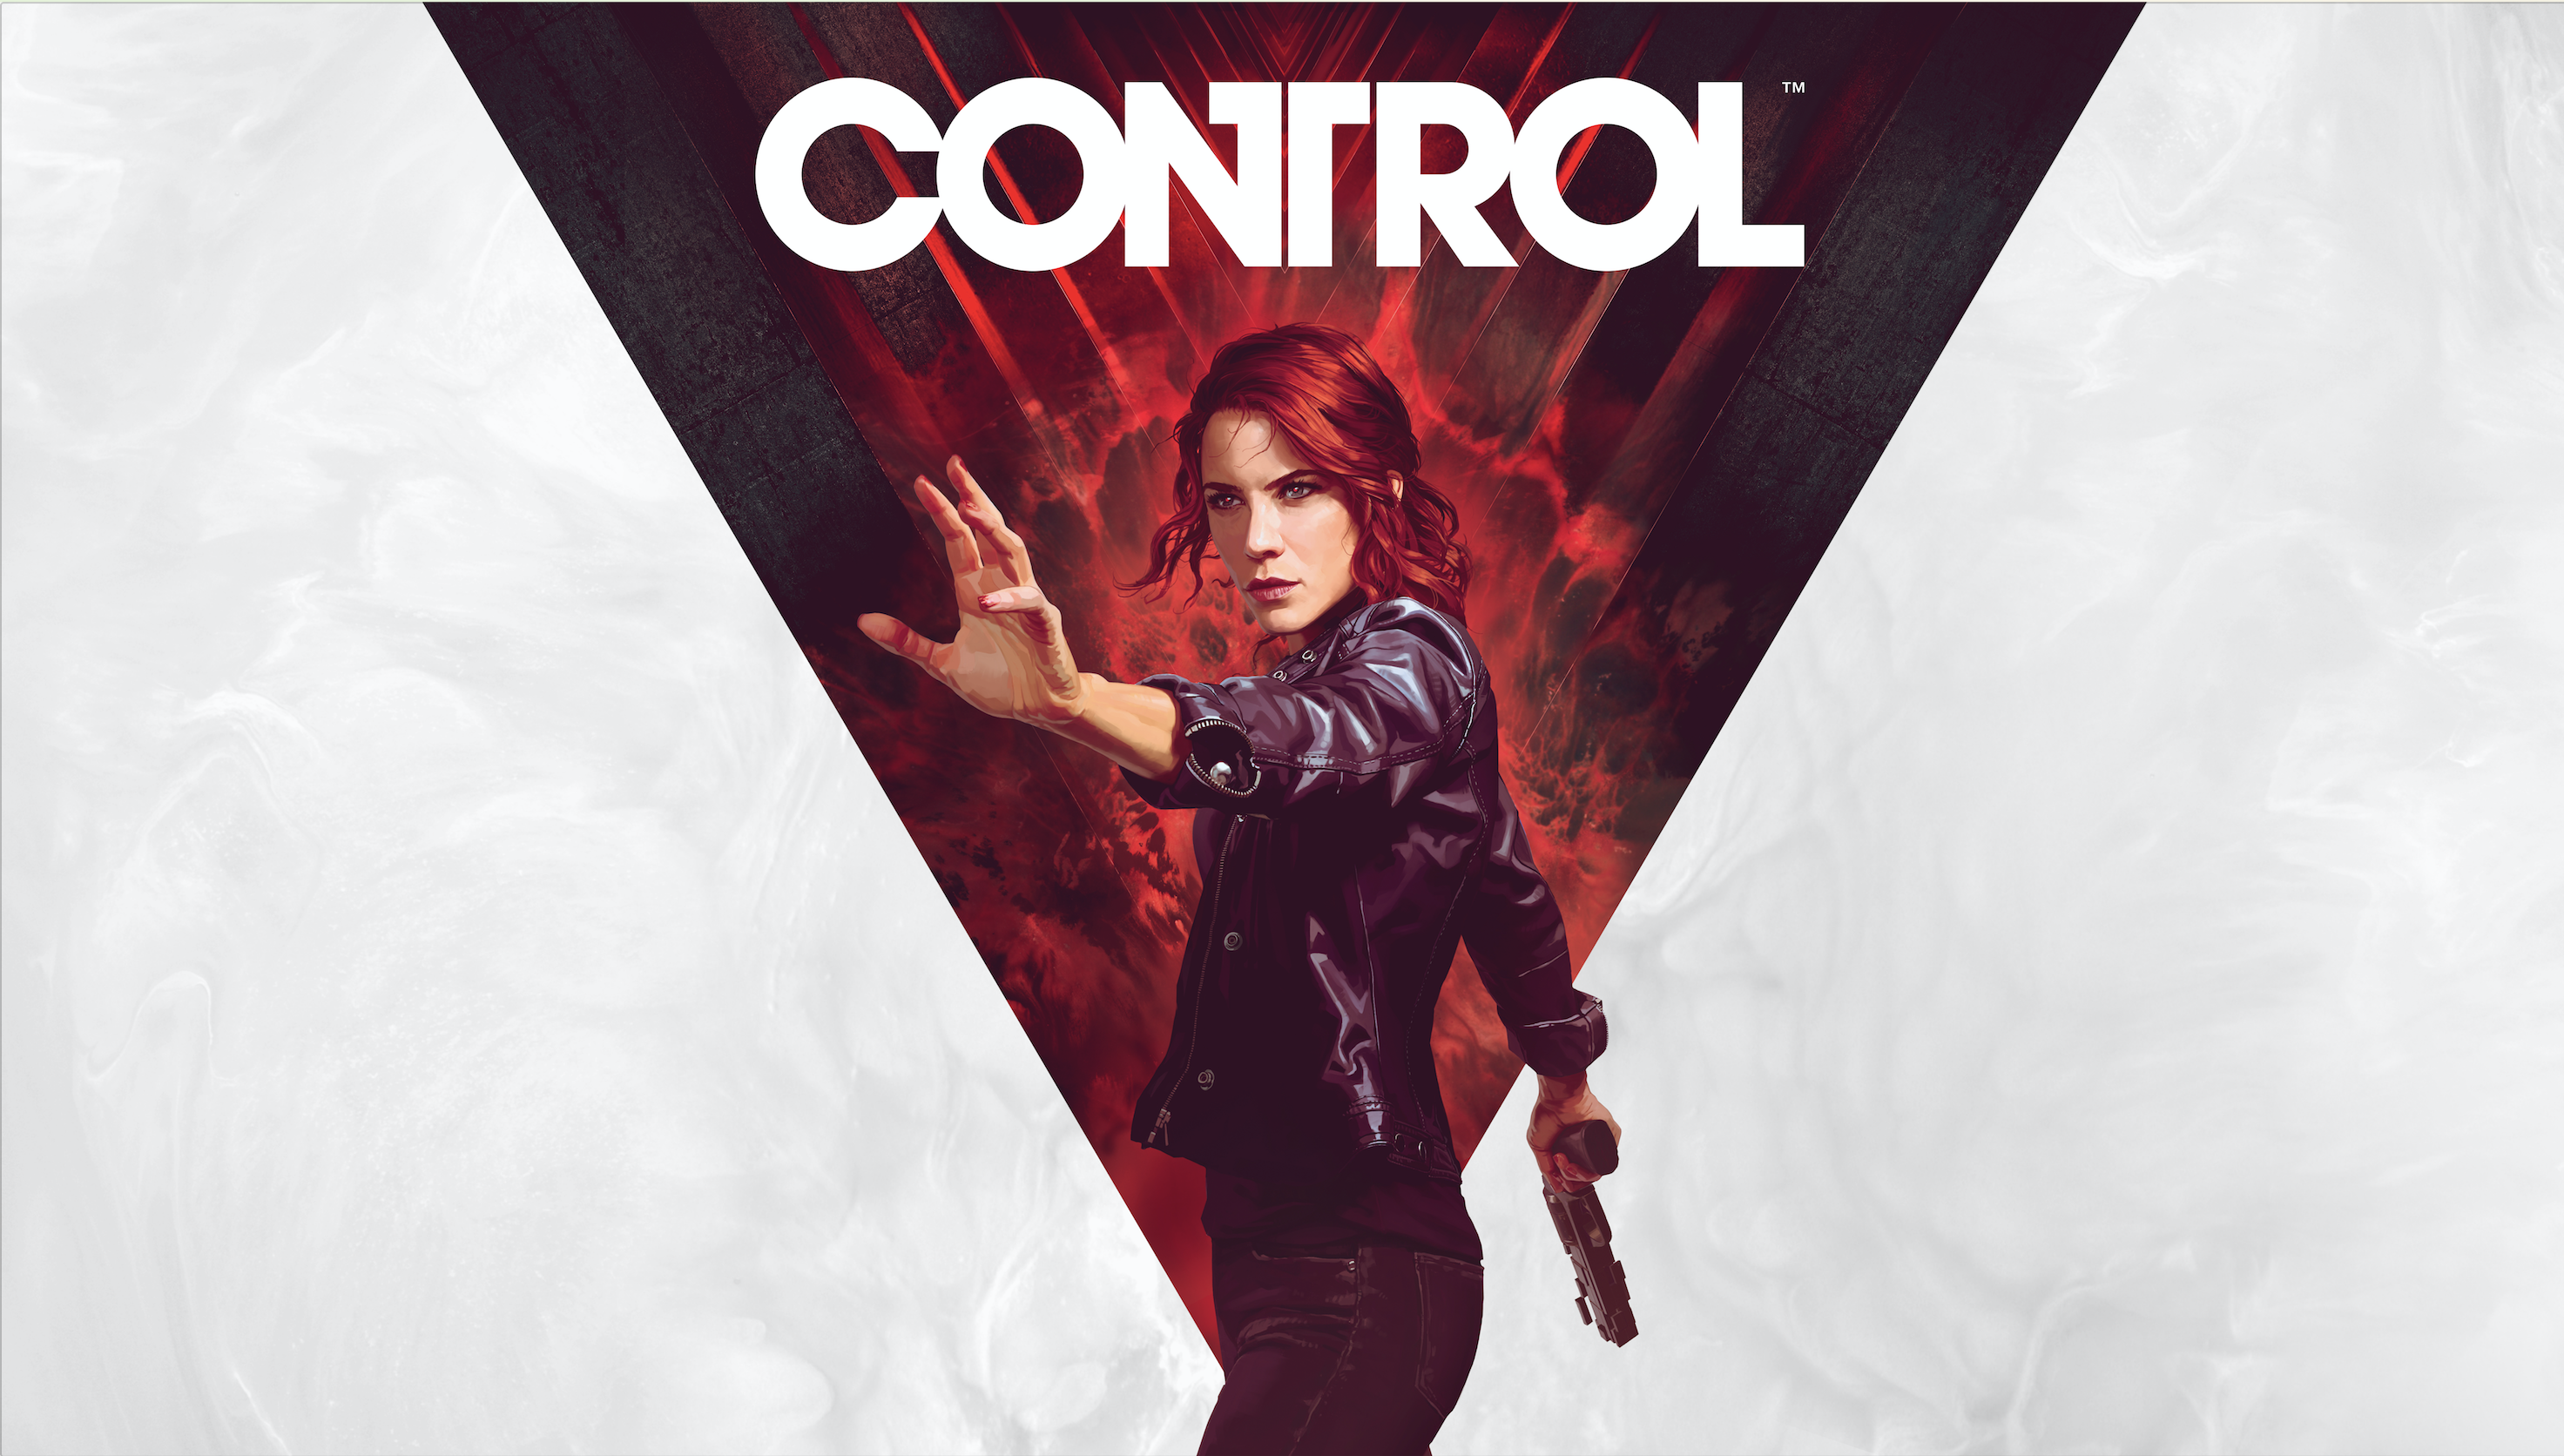 Control Will Be a Wild Supernatural Ride. Here's the Exclusive Trailer for Its Launch.